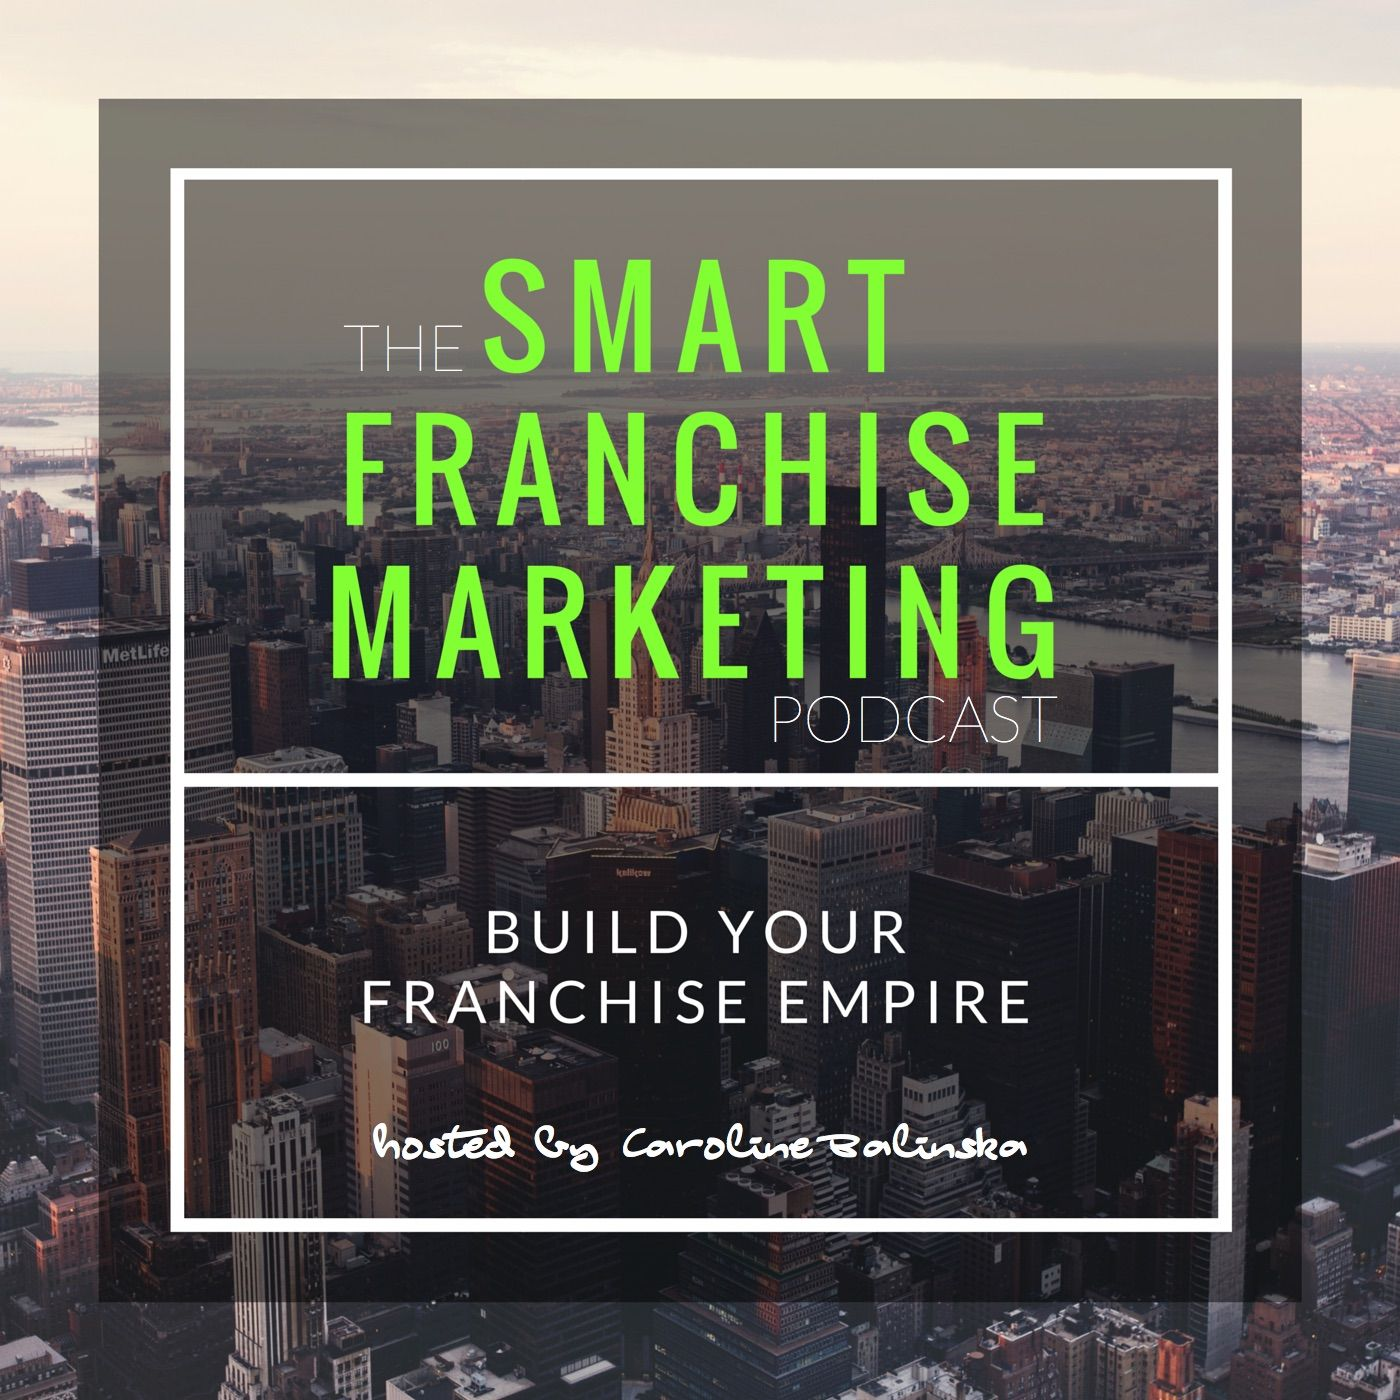 The Smart Franchise Marketing Podcast